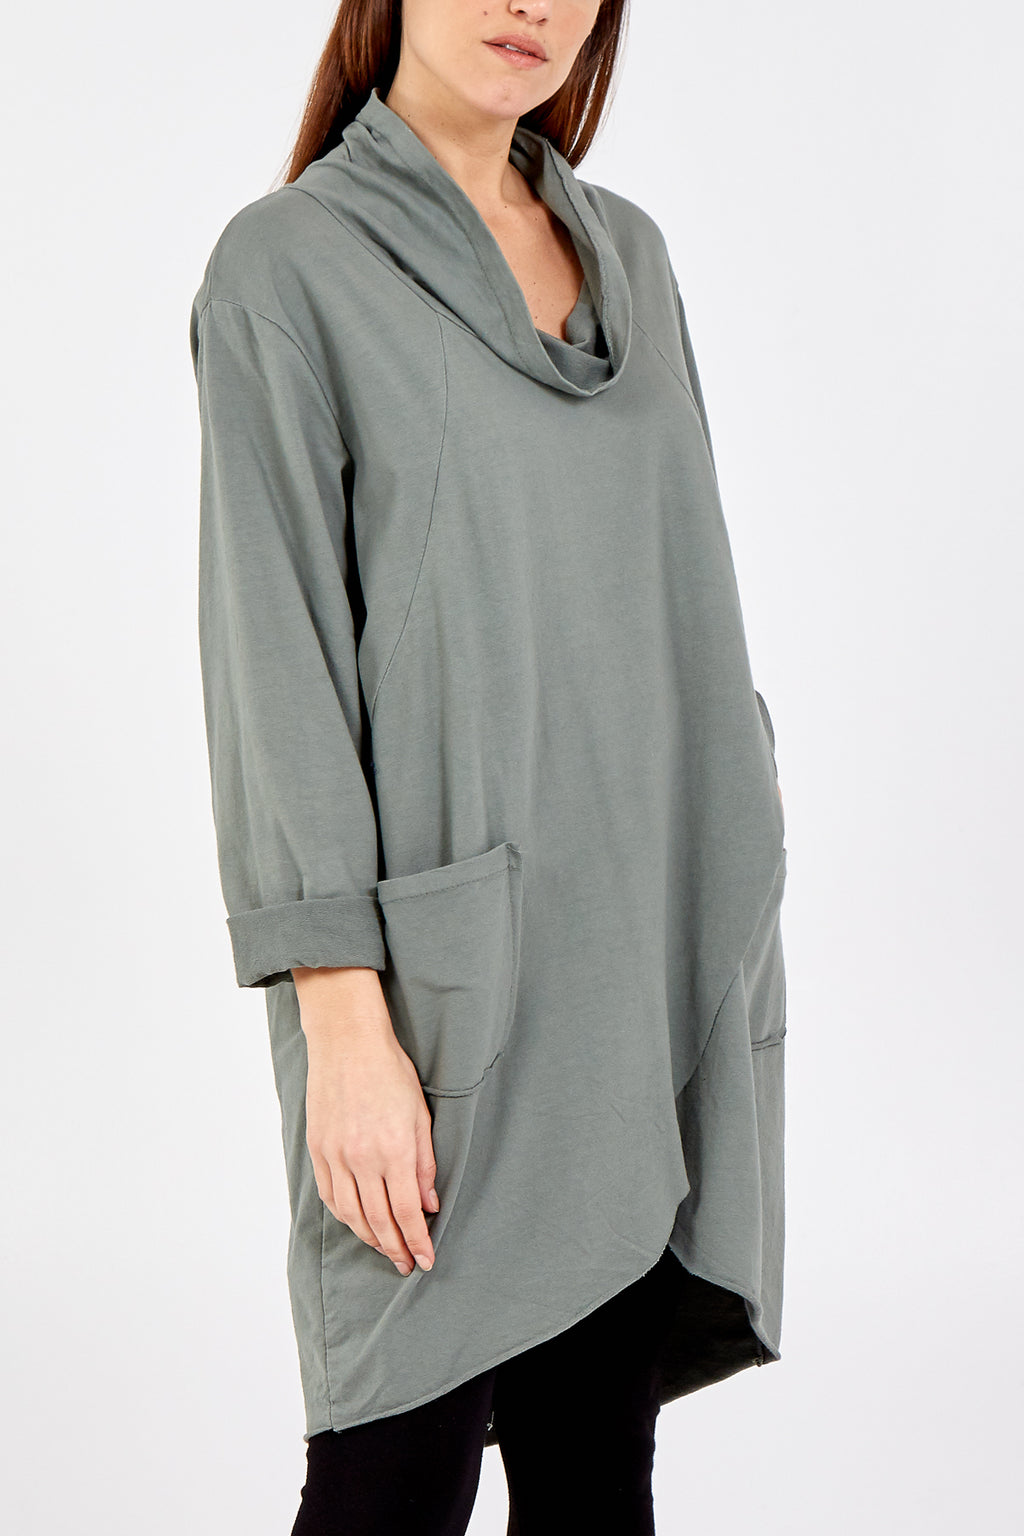 Cowl Neck High Low Top With Pockets